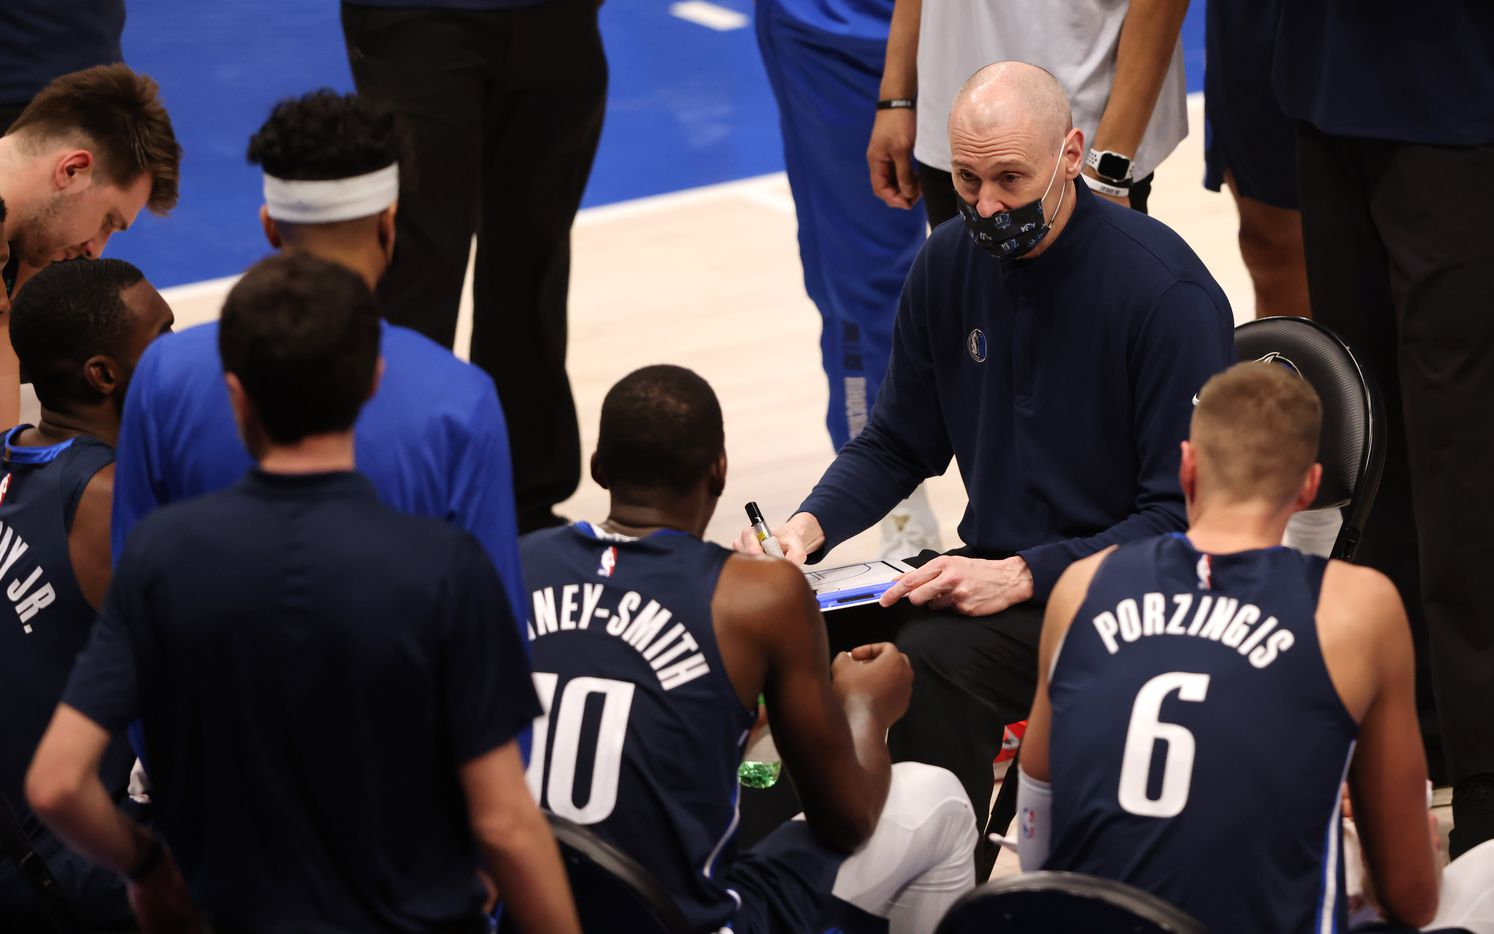 Dallas Mavericks head coach Rick Carlisle talks to the team during a timeout in a game against the Phoenix Suns during the fourth quarter of play at American Airlines Center on Monday, February 1, 2021in Dallas. The Dallas Mavericks lost to the Phoenix Suns 109-108. (Vernon Bryant/The Dallas Morning News)